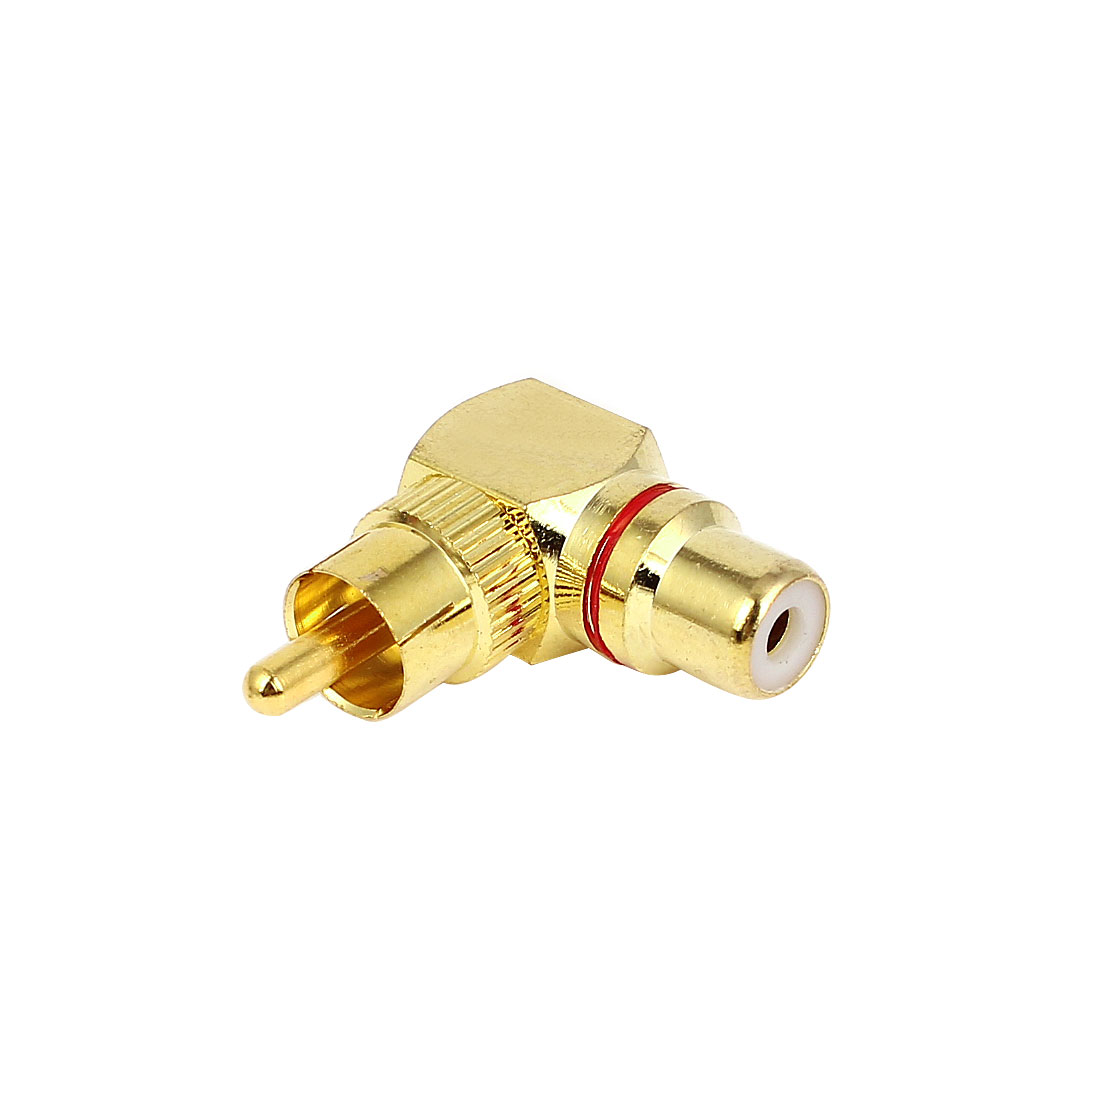 Gold Plated 90 Degree Elbow RCA Male to Female Jack Connector Adapters